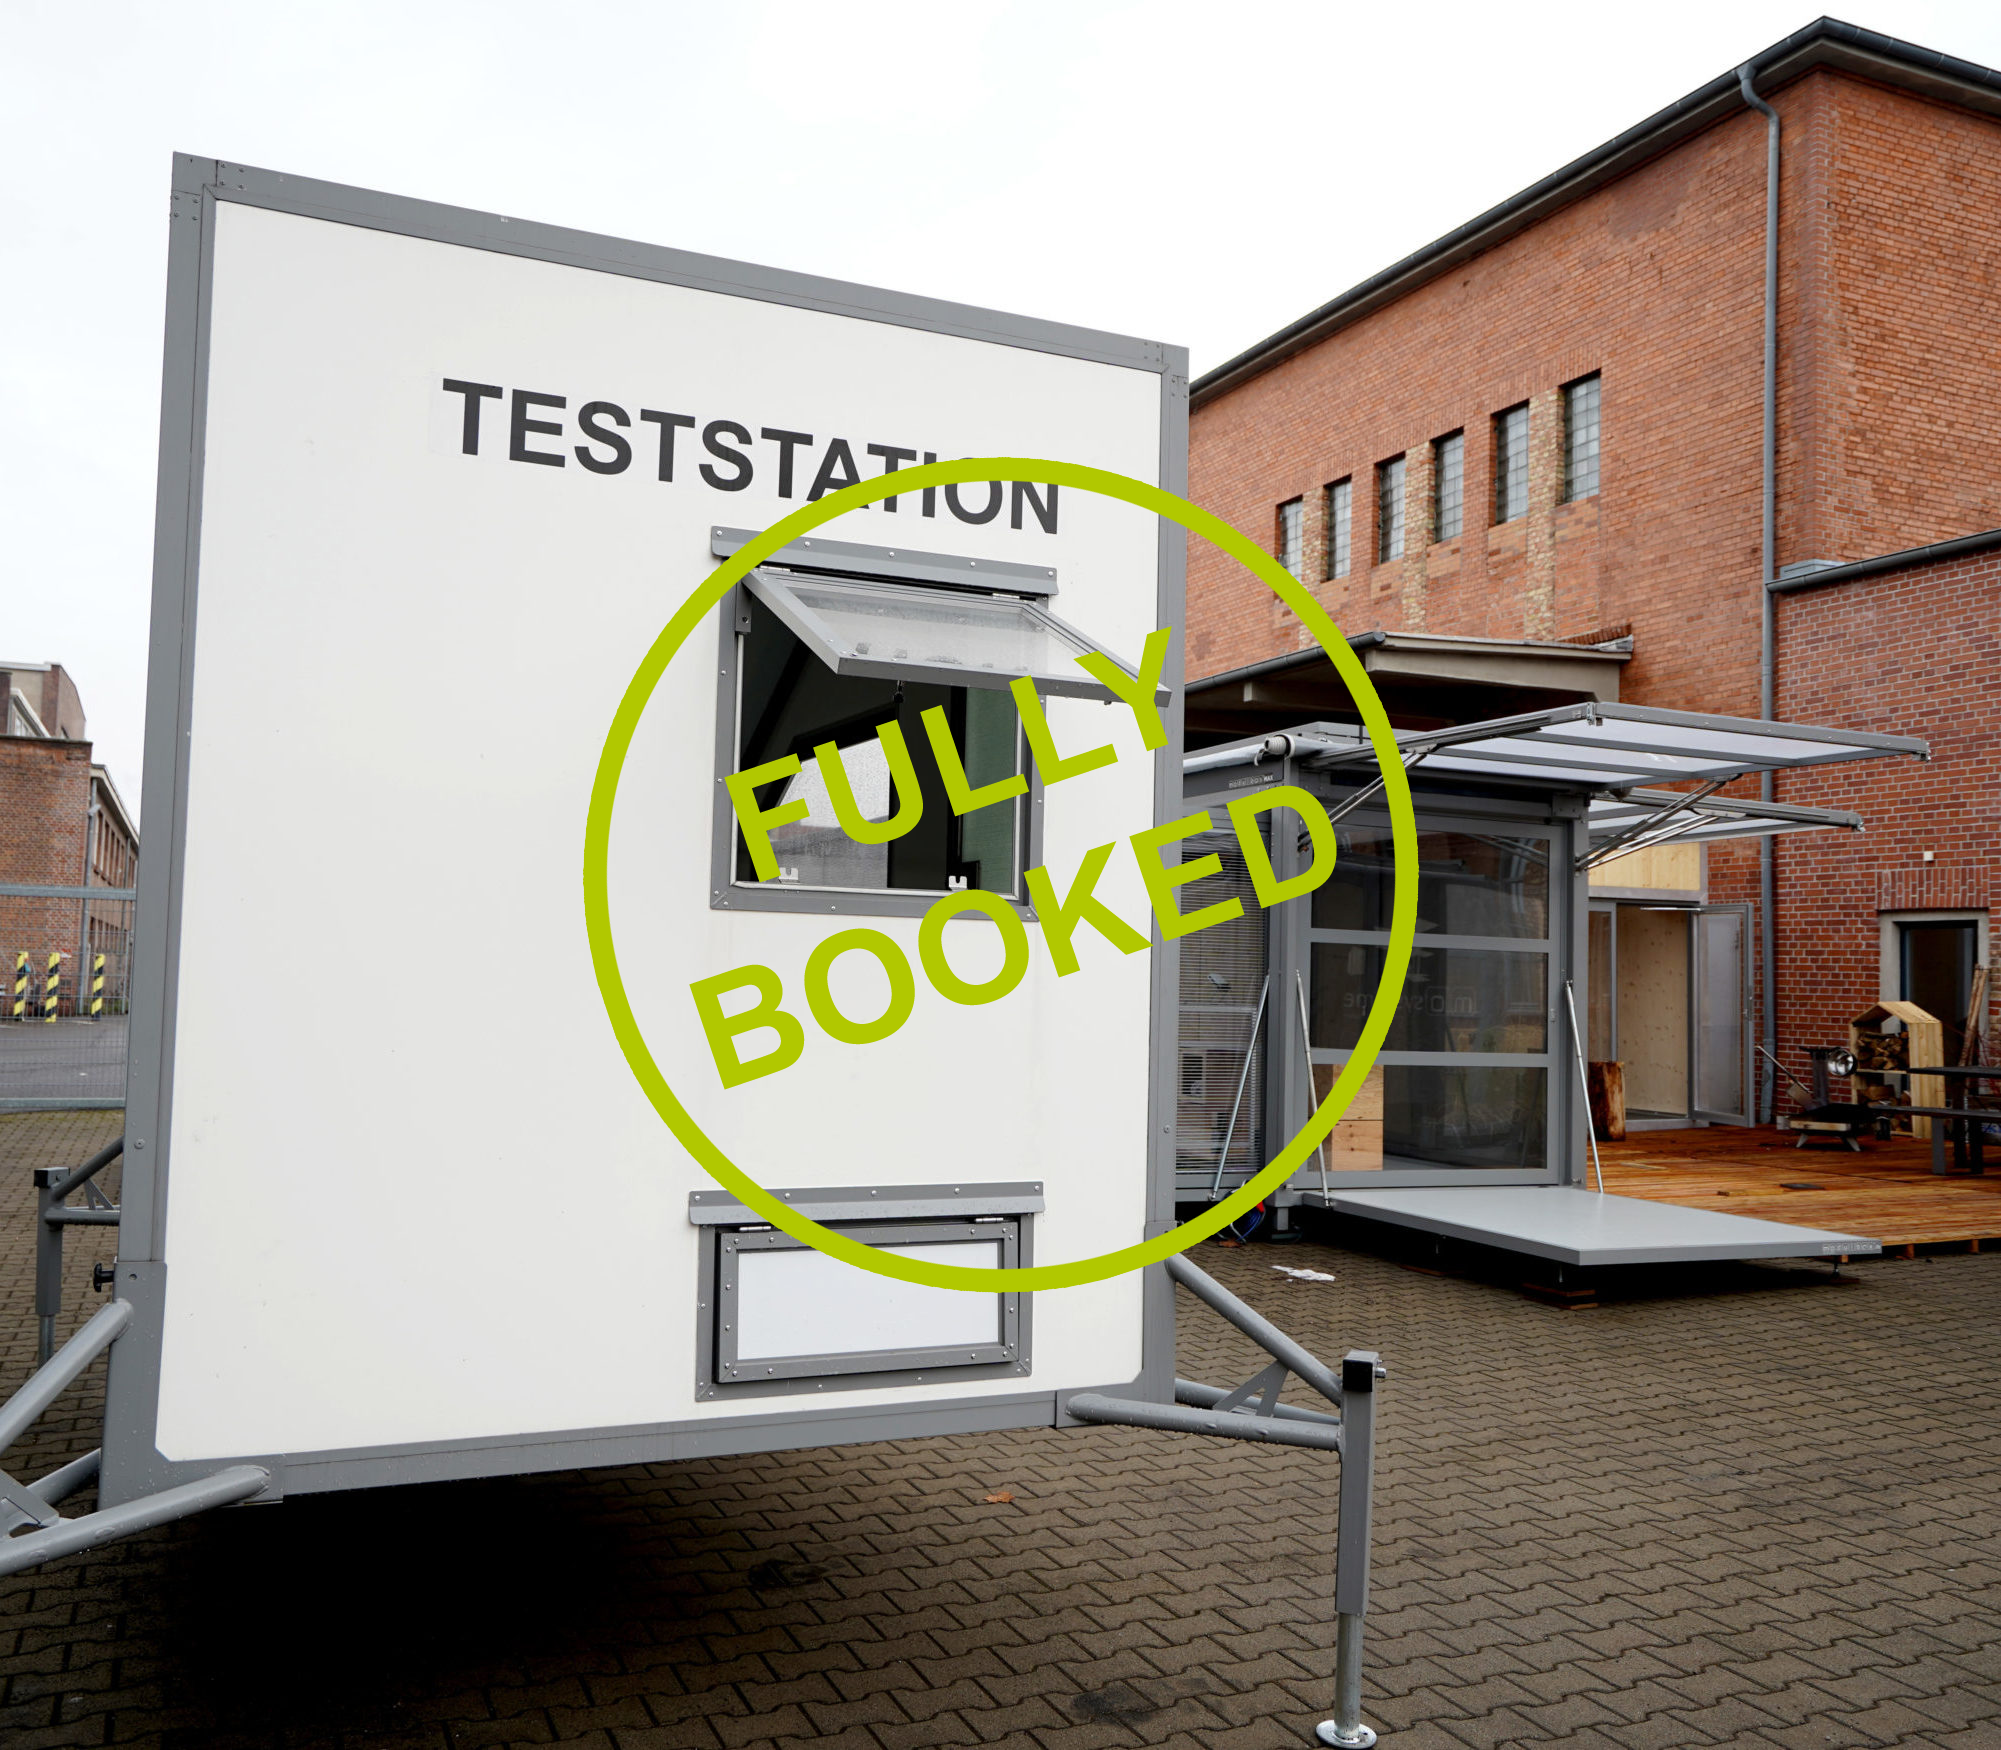 Covid19-Test-Station_Fully-Booked